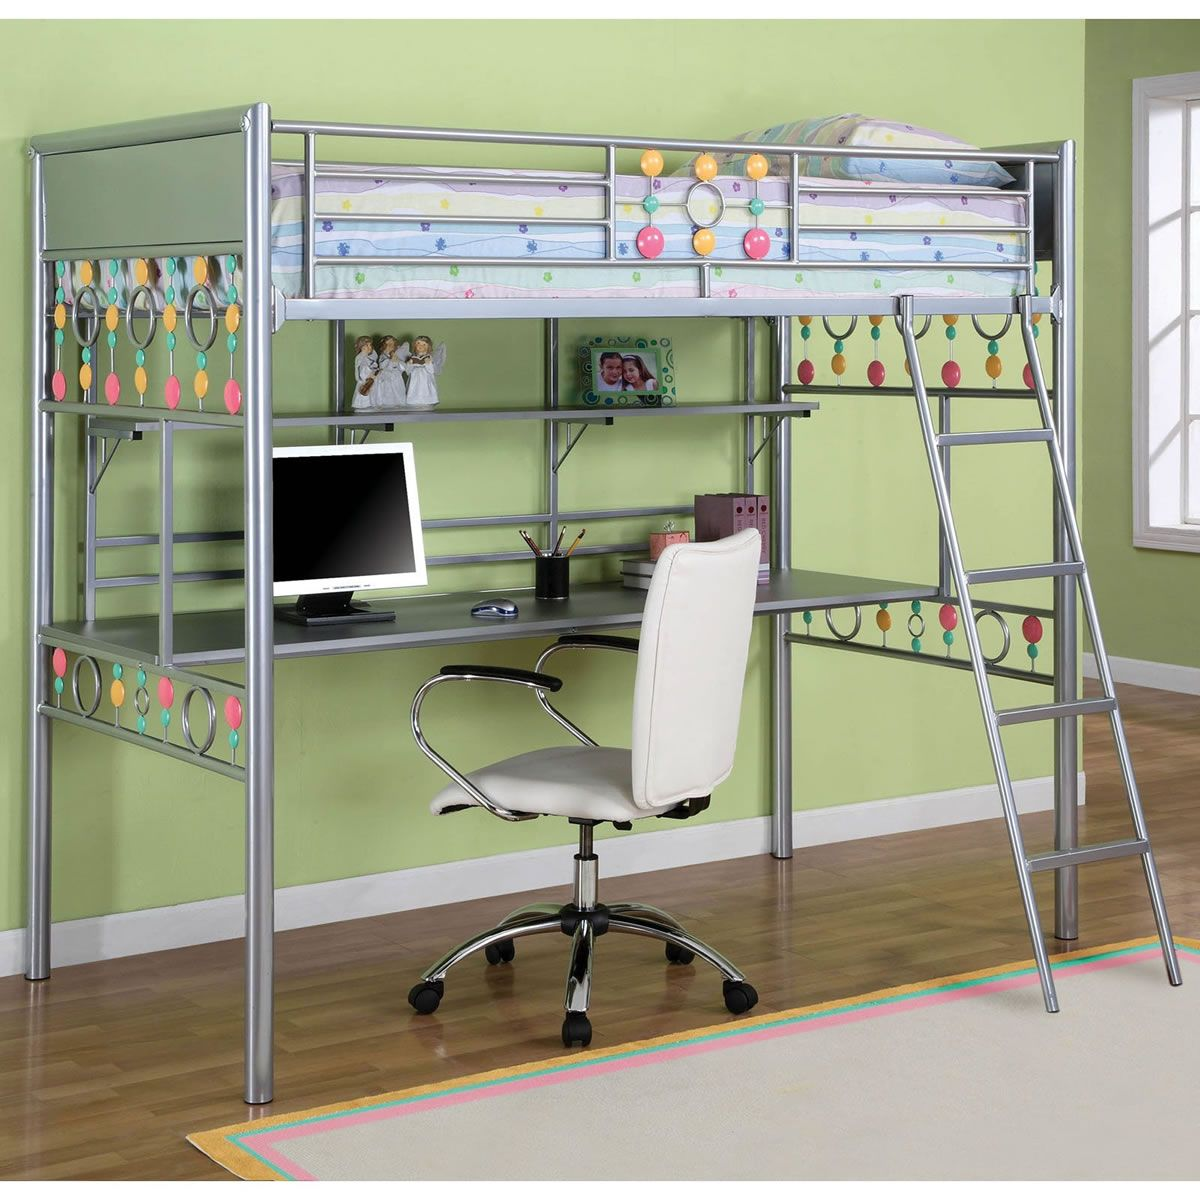 Girls bunk beds with stairs and desk - Loft Bed With Desk Underneath For More Freed Up Space In A Shared Room